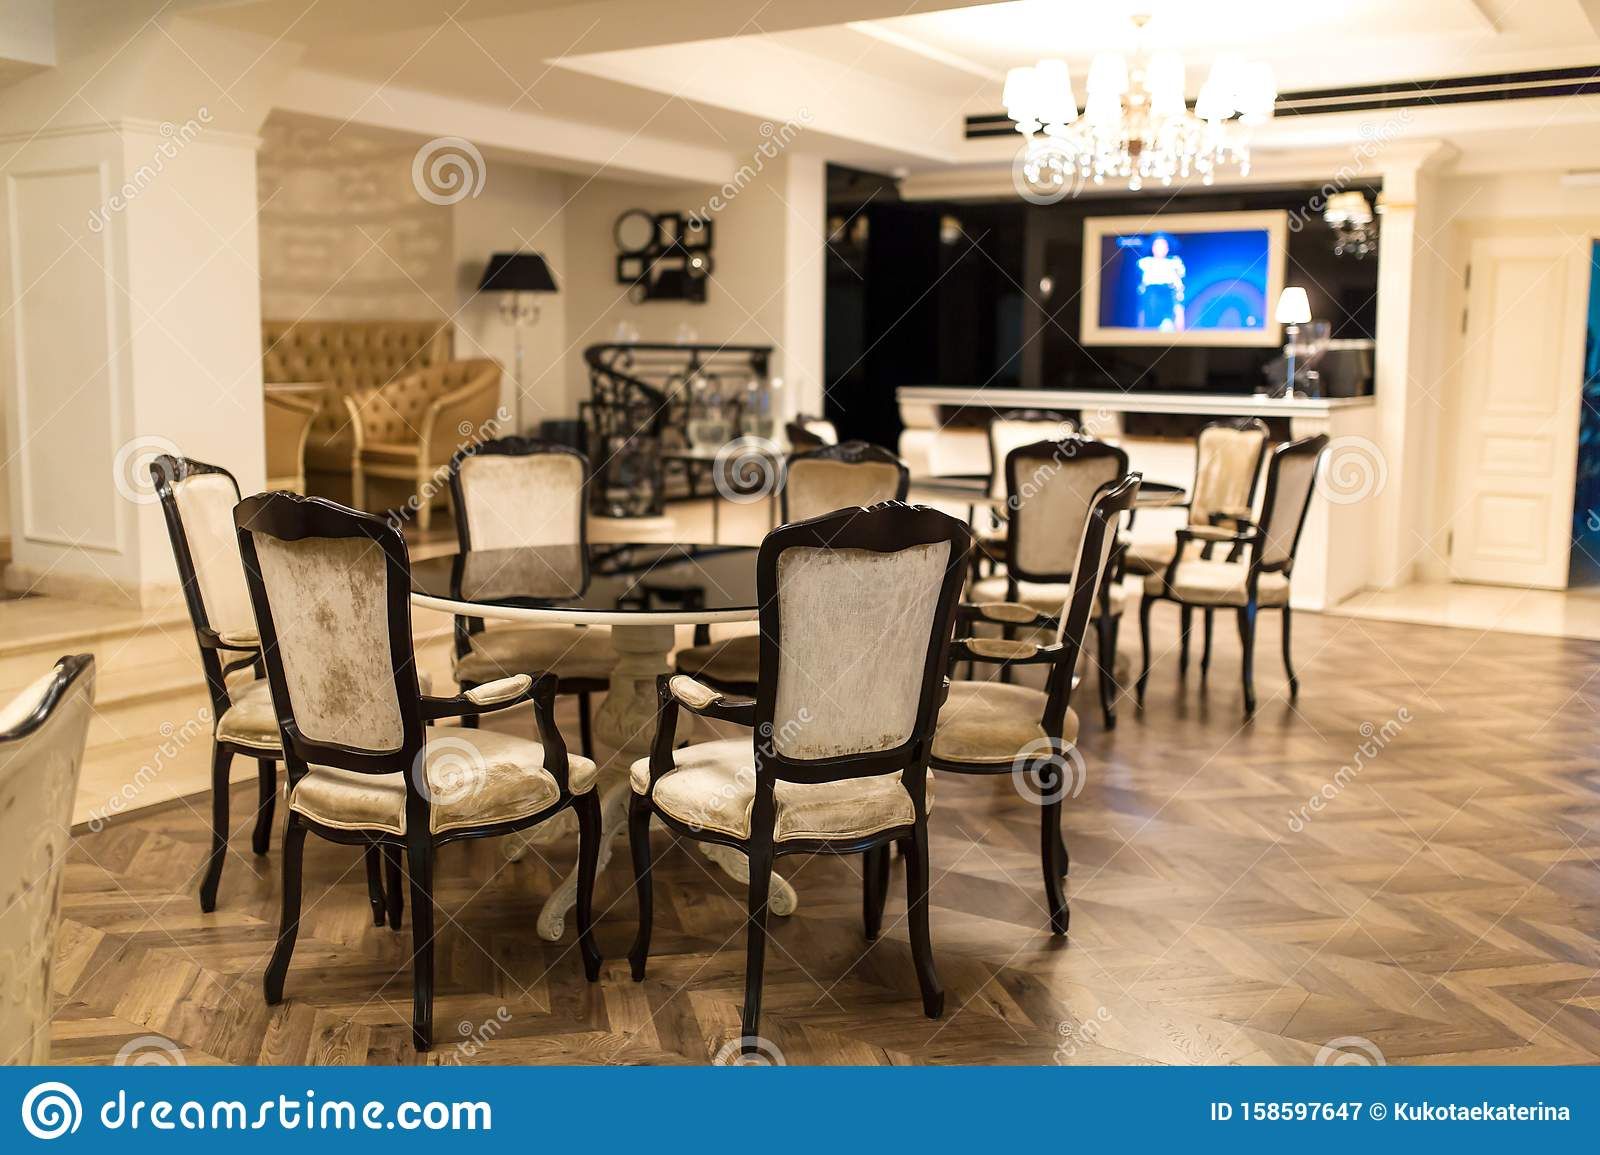 Stylish Restaurant Small Round Table For 5 People Near The Bar Stock Image Image Of Dinner Decoration 158597647